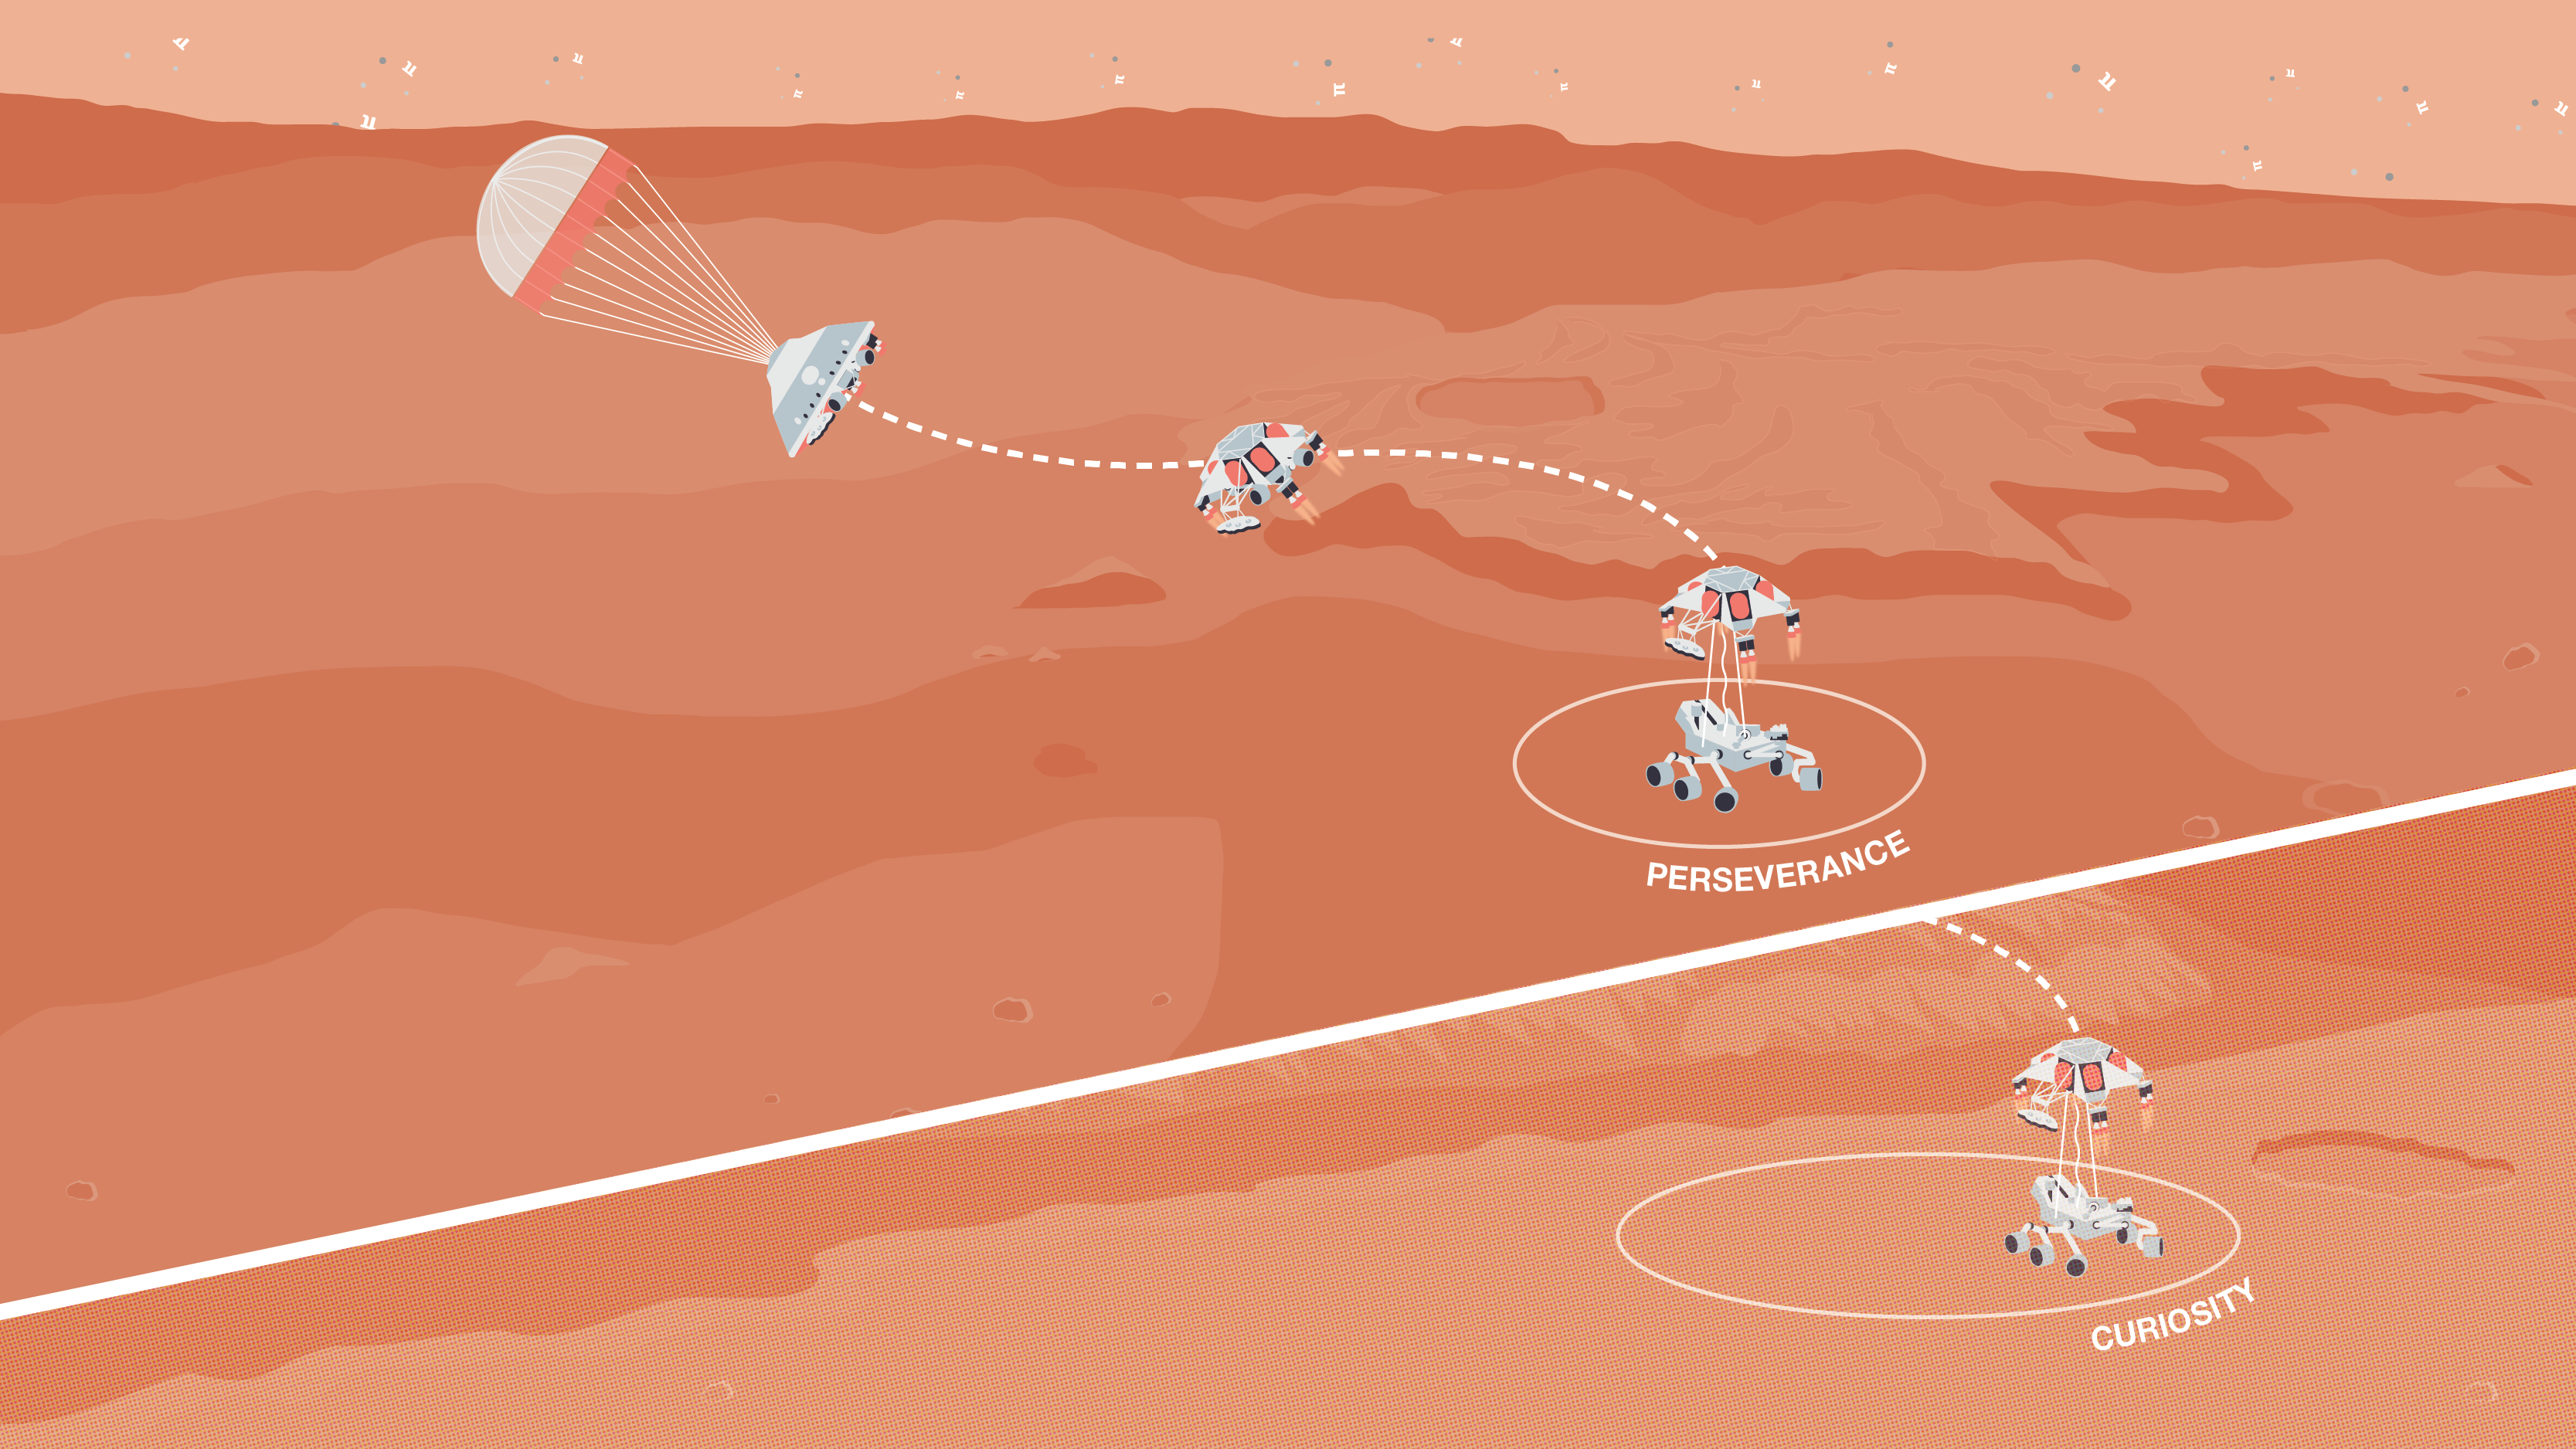 Illustration (split-screen) of Perseverance landing on Mars in a smaller landing ellipse compared with Curiosity's.